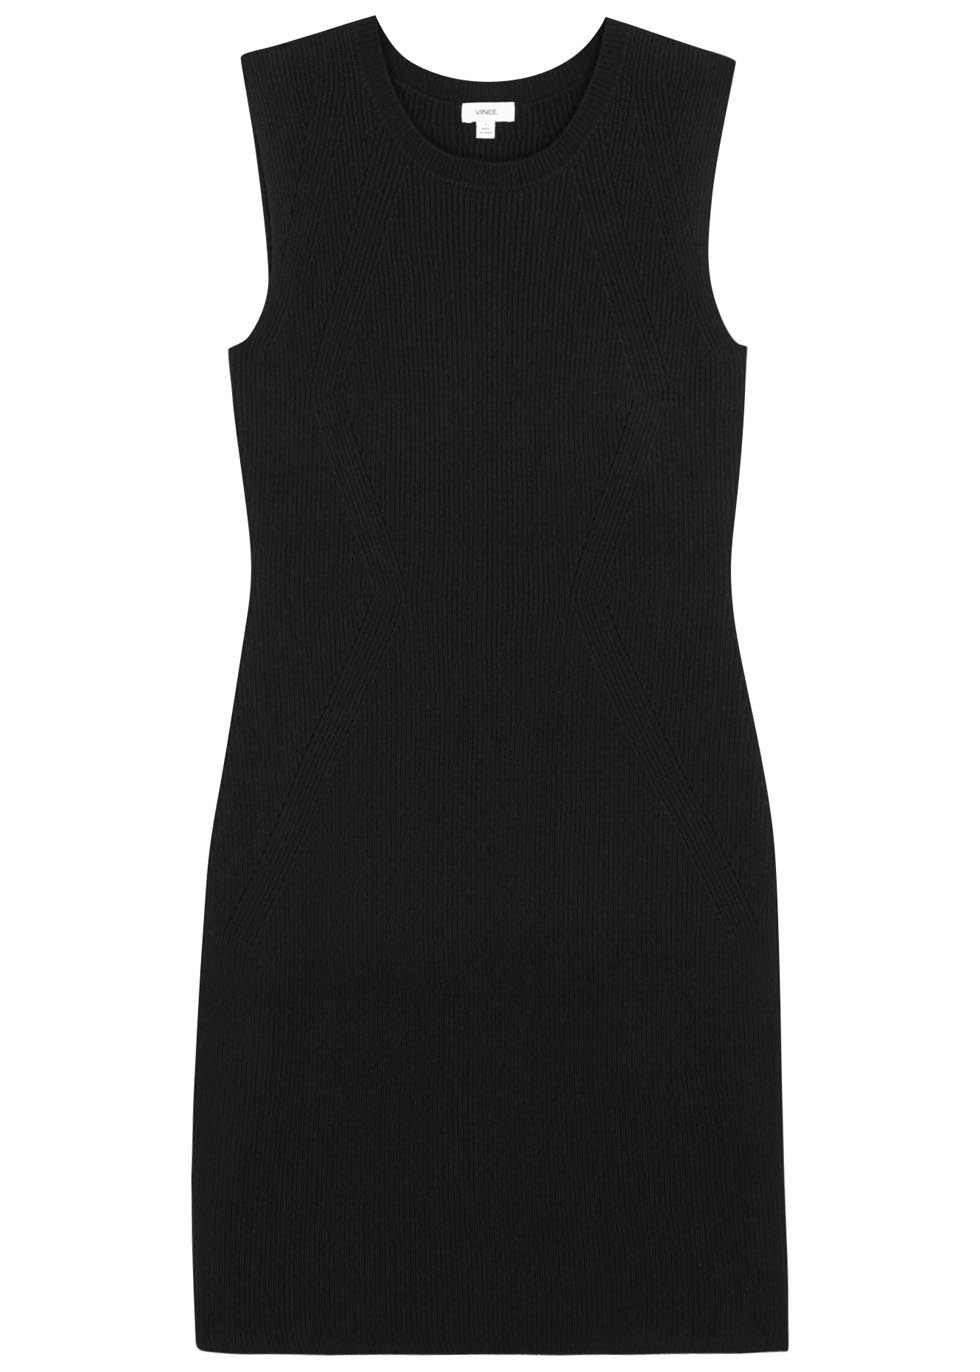 Black Ribbed Wool Blend Dress - style: shift; length: mid thigh; neckline: v-neck; fit: tailored/fitted; pattern: plain; sleeve style: sleeveless; hip detail: draws attention to hips; predominant colour: black; occasions: evening; fibres: wool - mix; sleeve length: sleeveless; pattern type: fabric; texture group: woven light midweight; season: s/s 2016; wardrobe: event